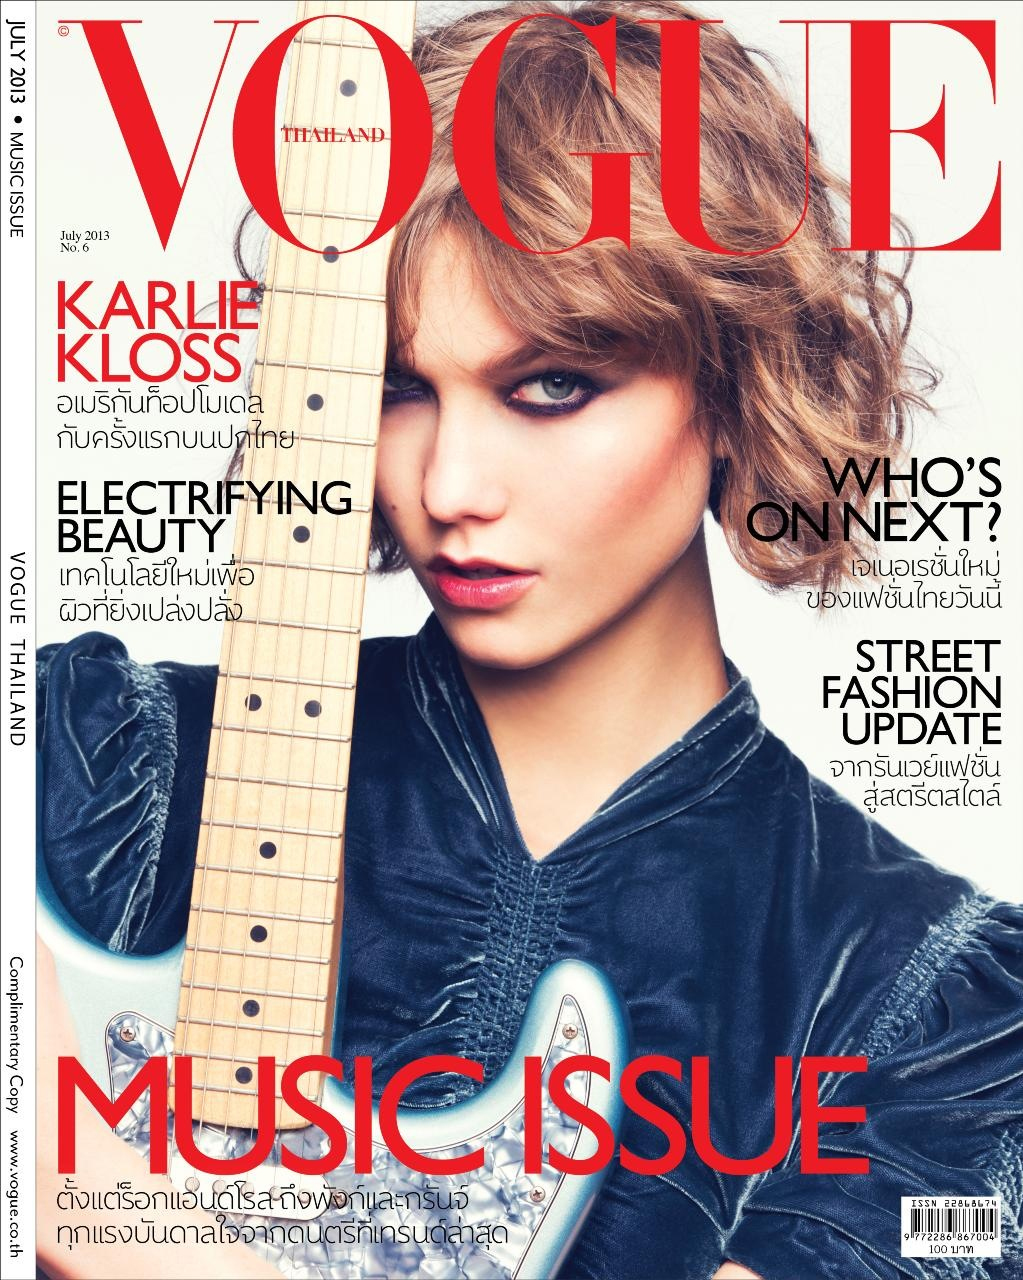 Karlie Kloss Covers Vogue Thailand July 2013 Music Issue